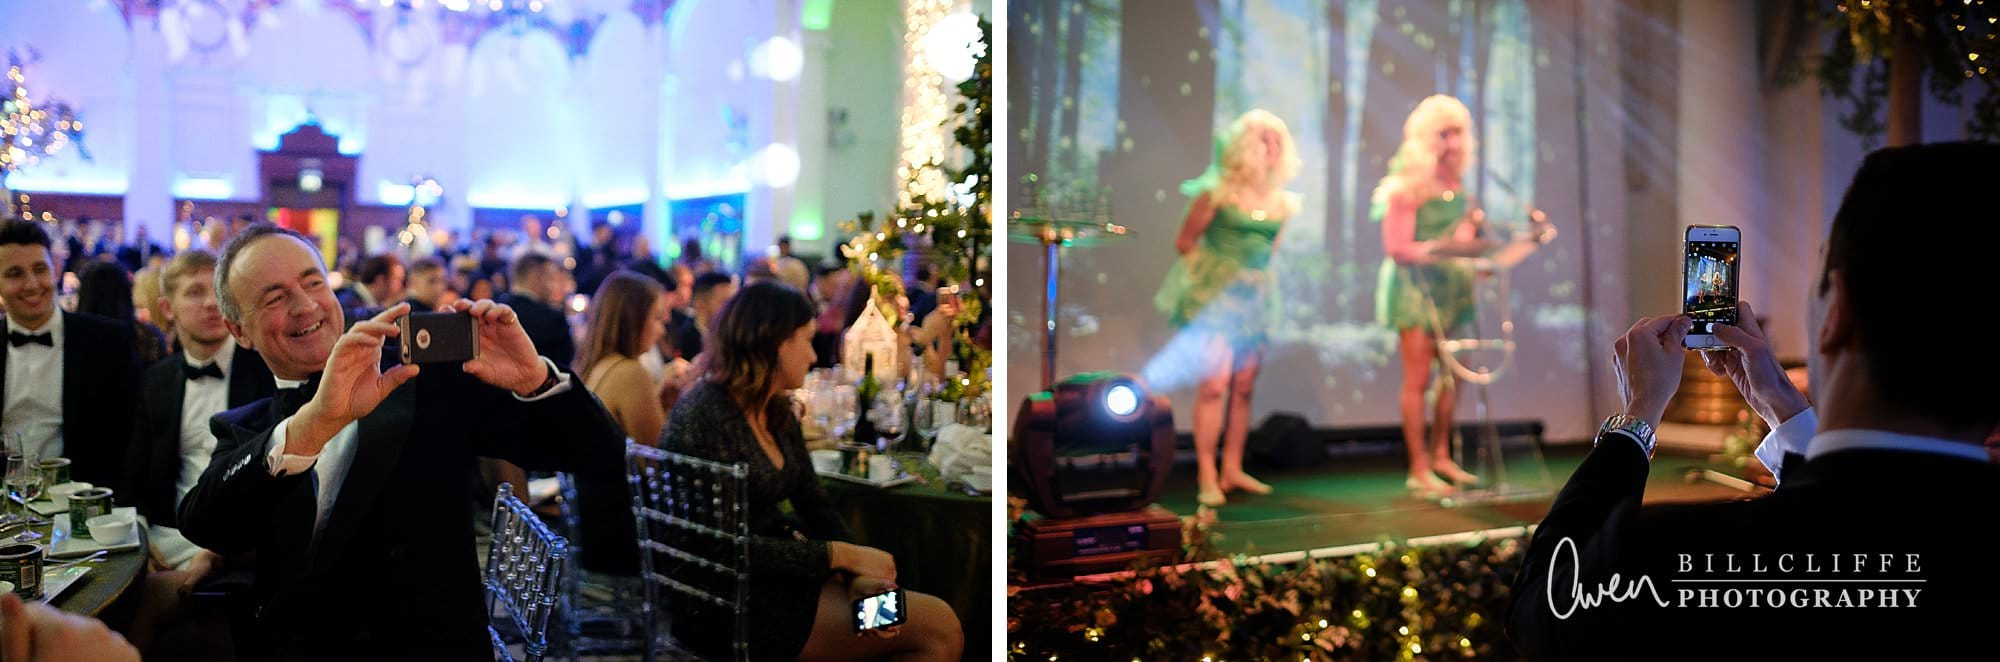 london event photographer 8 northumberland avenue mh 012 - A Christmas Party at 8 Northumberland